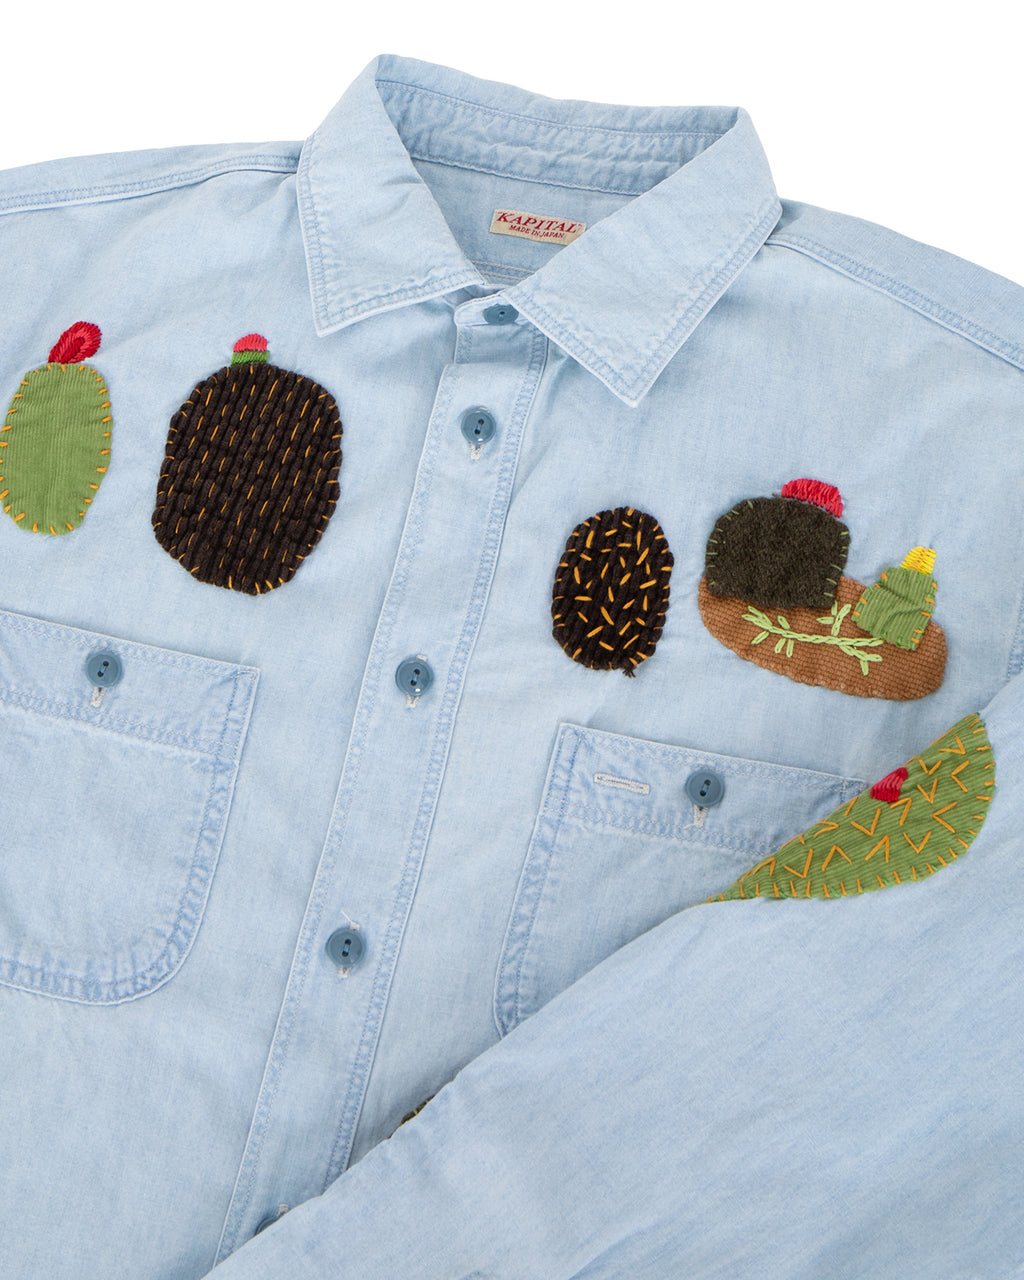 Kapital Chambray Work Shirt, Cactus Embroidery